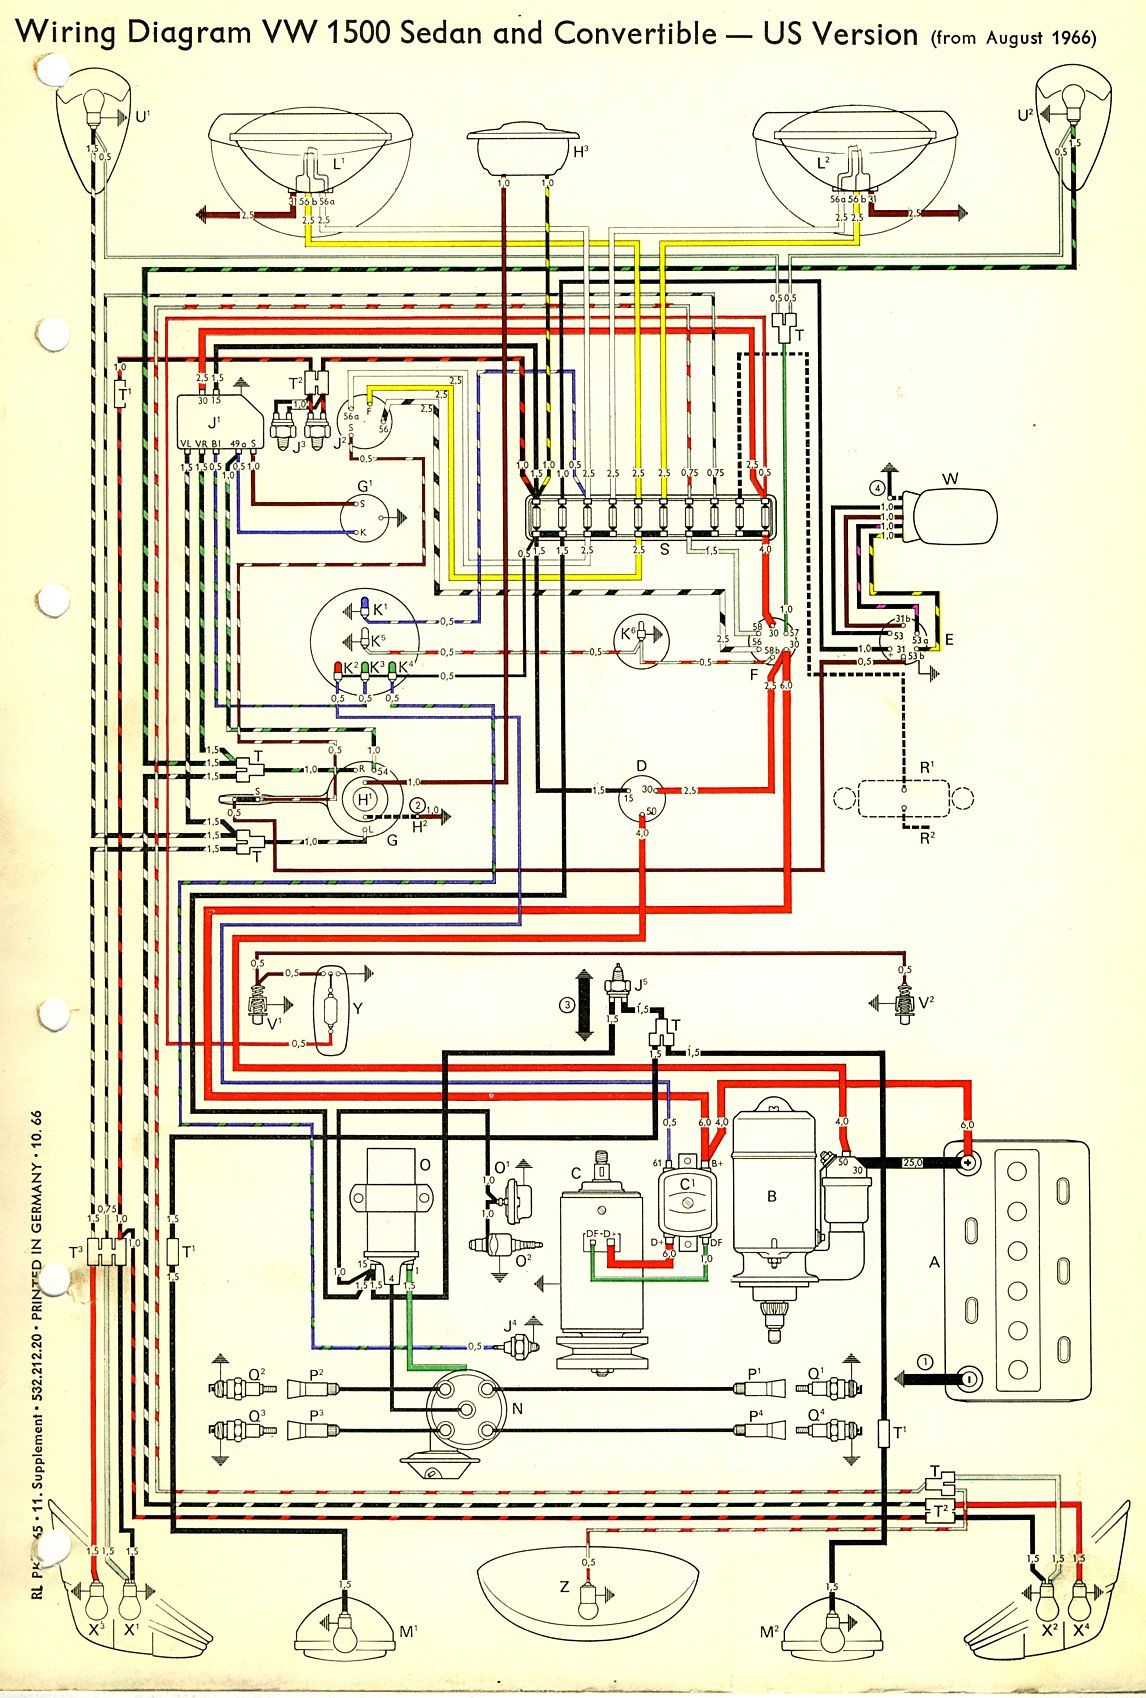 DIAGRAM] 2005 Volkswagen Beetle Wiring Diagram FULL Version HD Quality Wiring  Diagram - CARRYBOYPHIL.K-DANSE.FRK-danse.fr